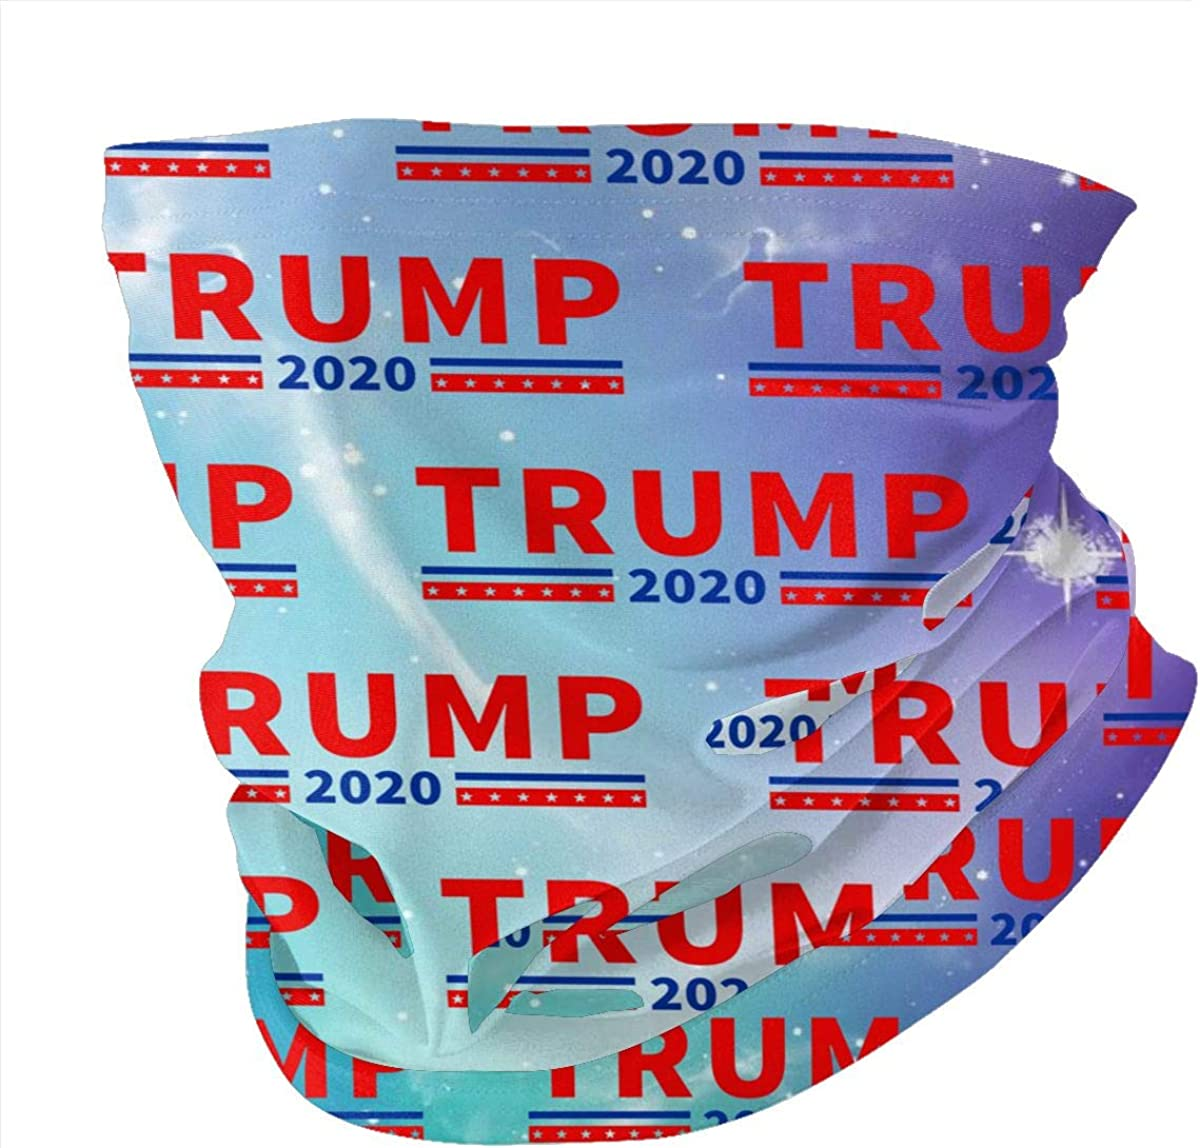 Riiat Vintage-Trump-2020 Neck Gaiter Bandana Tube Face Mask Headwear Headband Magic Scarf Balaclava Sweatband UV Sun Anti-Wind Dust For Outdoor Sports